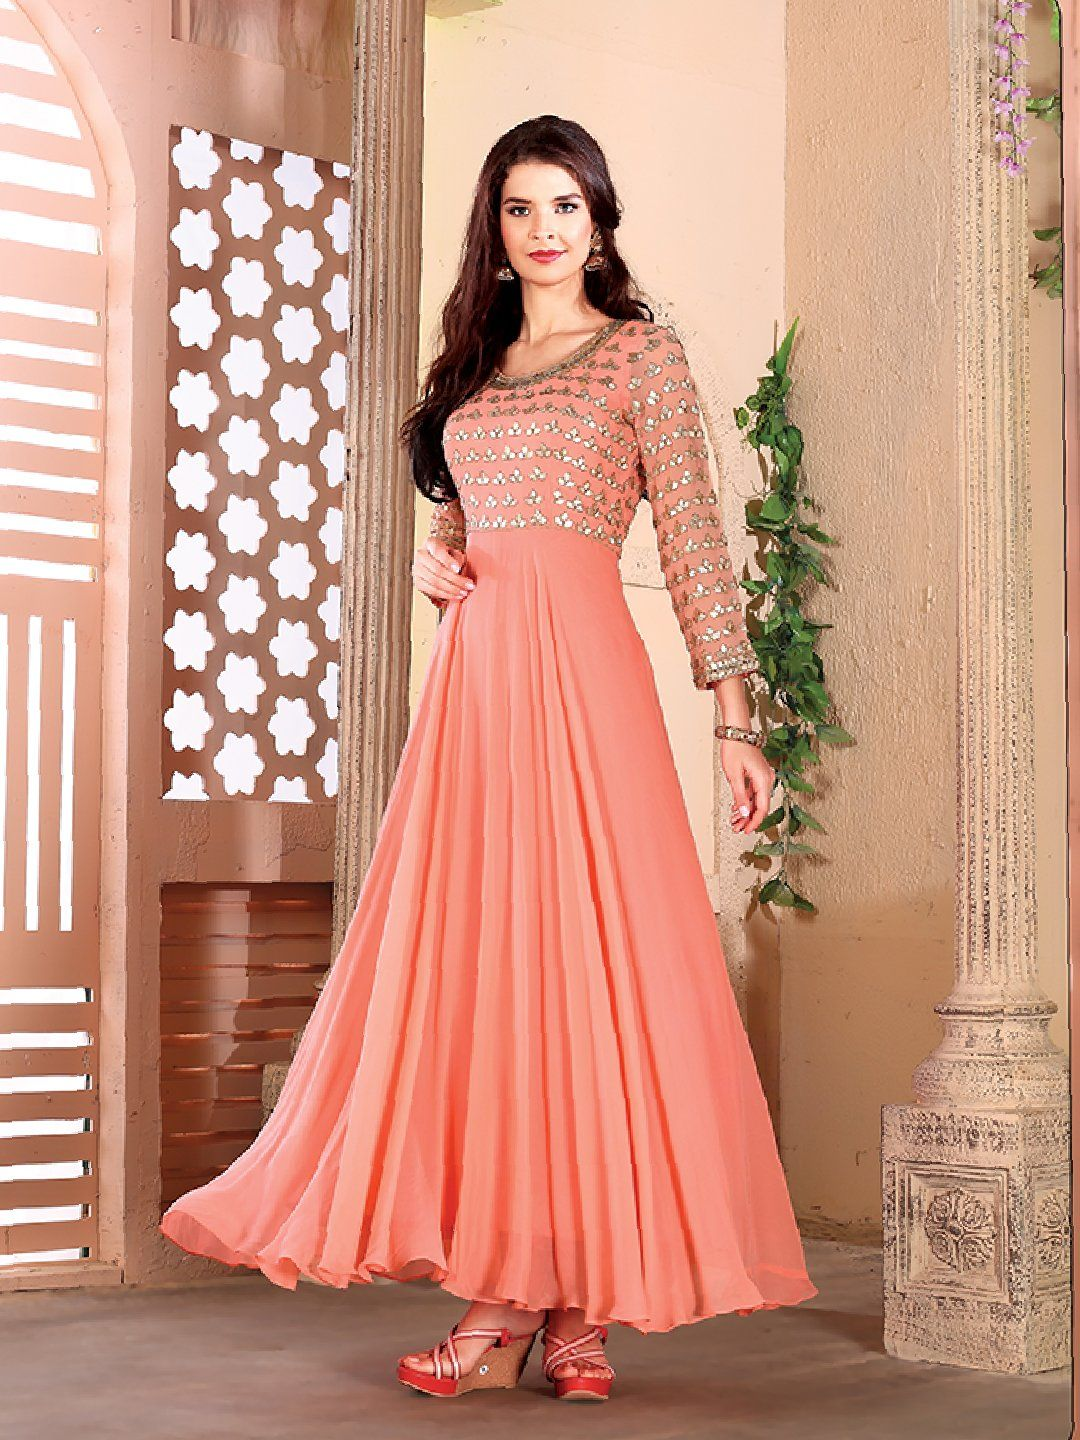 87c11eef3 Shop Georgette peach color anarkali suit online from G3fashion India. Brand  - G3, Product code - G3-WSS00352, Price - 10495, Color - Peach, ...